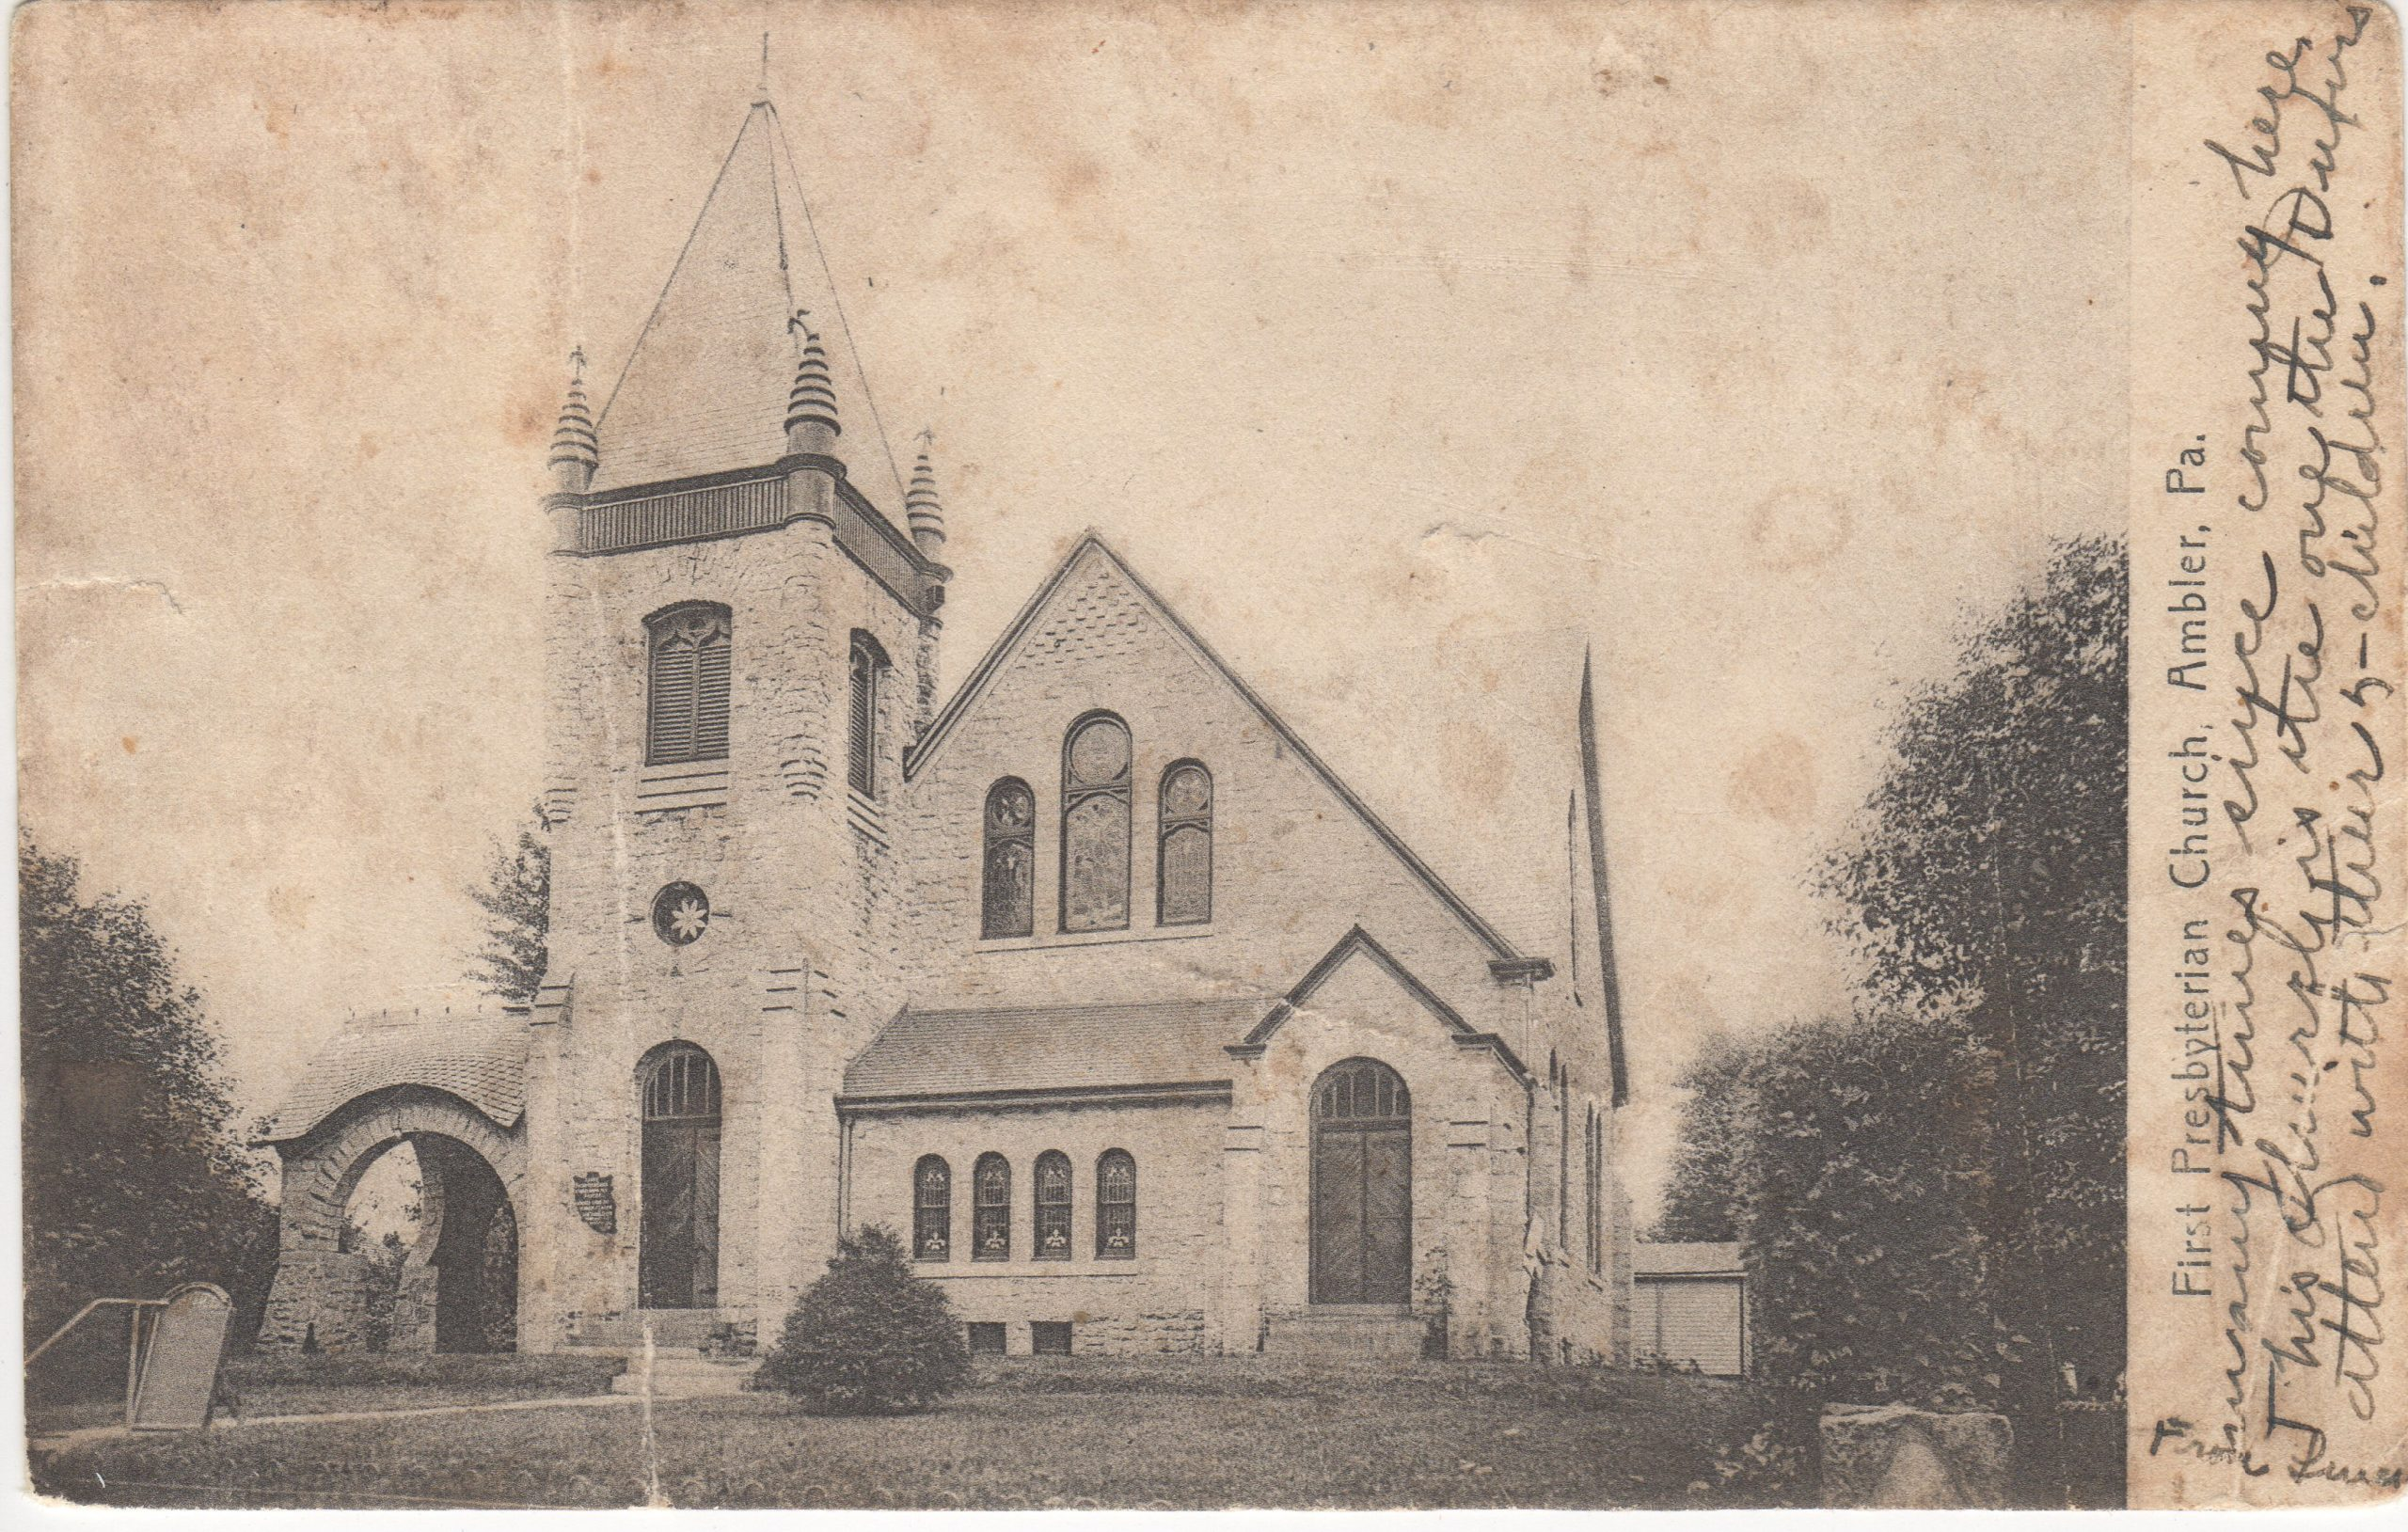 4125.17 Ambler Pa Postcard_First Presbyterian Church (2)